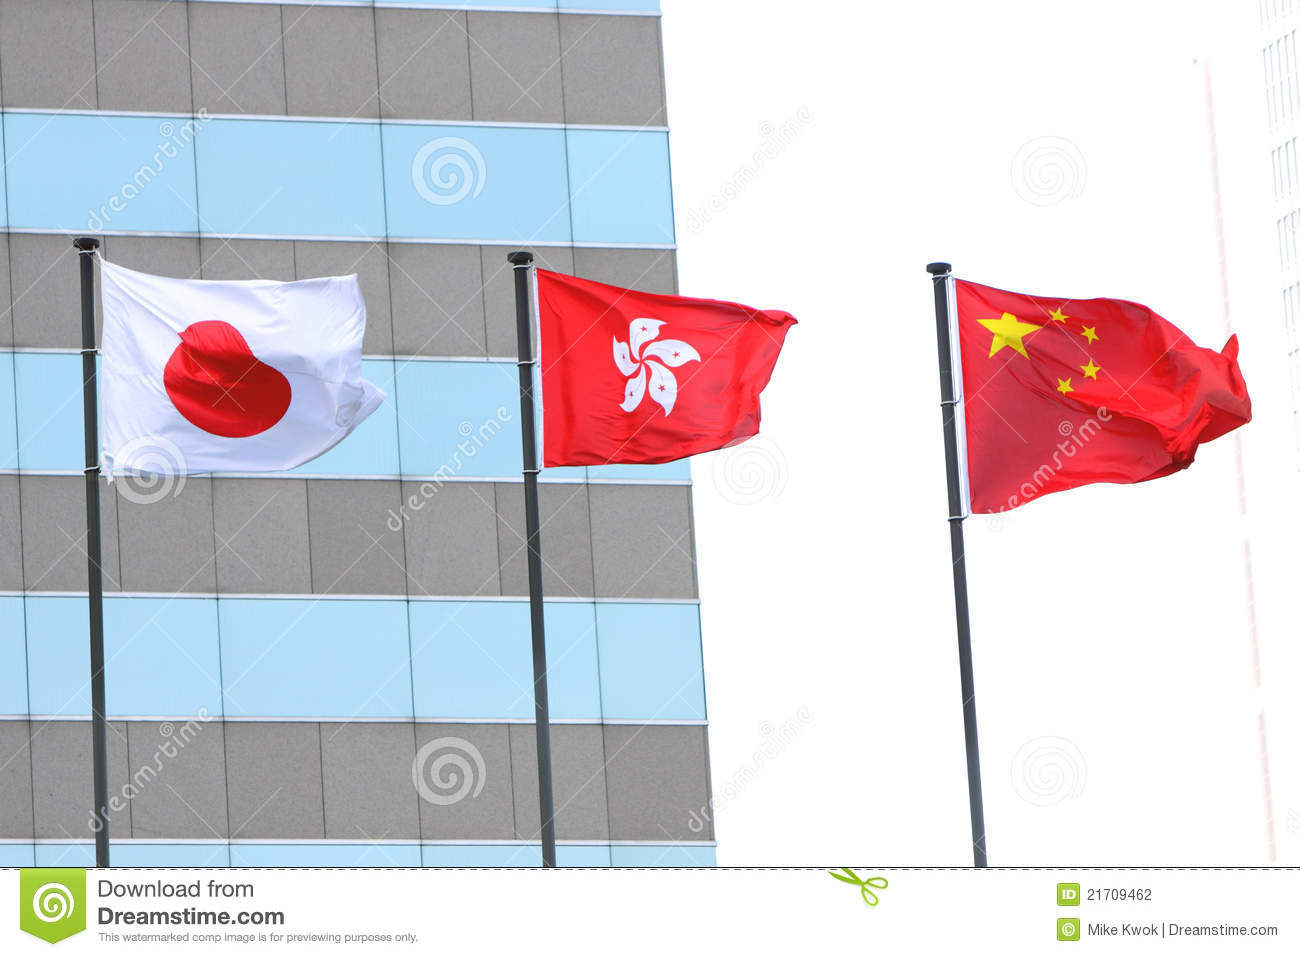 Stock Photography China Hong Kong Japan Flags Image21709462 likewise Royalty Free Stock Photography Spring Snowdrop Flower Image19228927 also Stock Photos Gare Montparnasse Railway Station View Tower Montparnasse P Paris France Image34783673 in addition Royalty Free Stock Photography Professional Surfer Mike Golder Surfing California Pro Santa Cruz Gopro Video Camera His Mouth Image32488567 additionally Showthread. on outdoor message boards